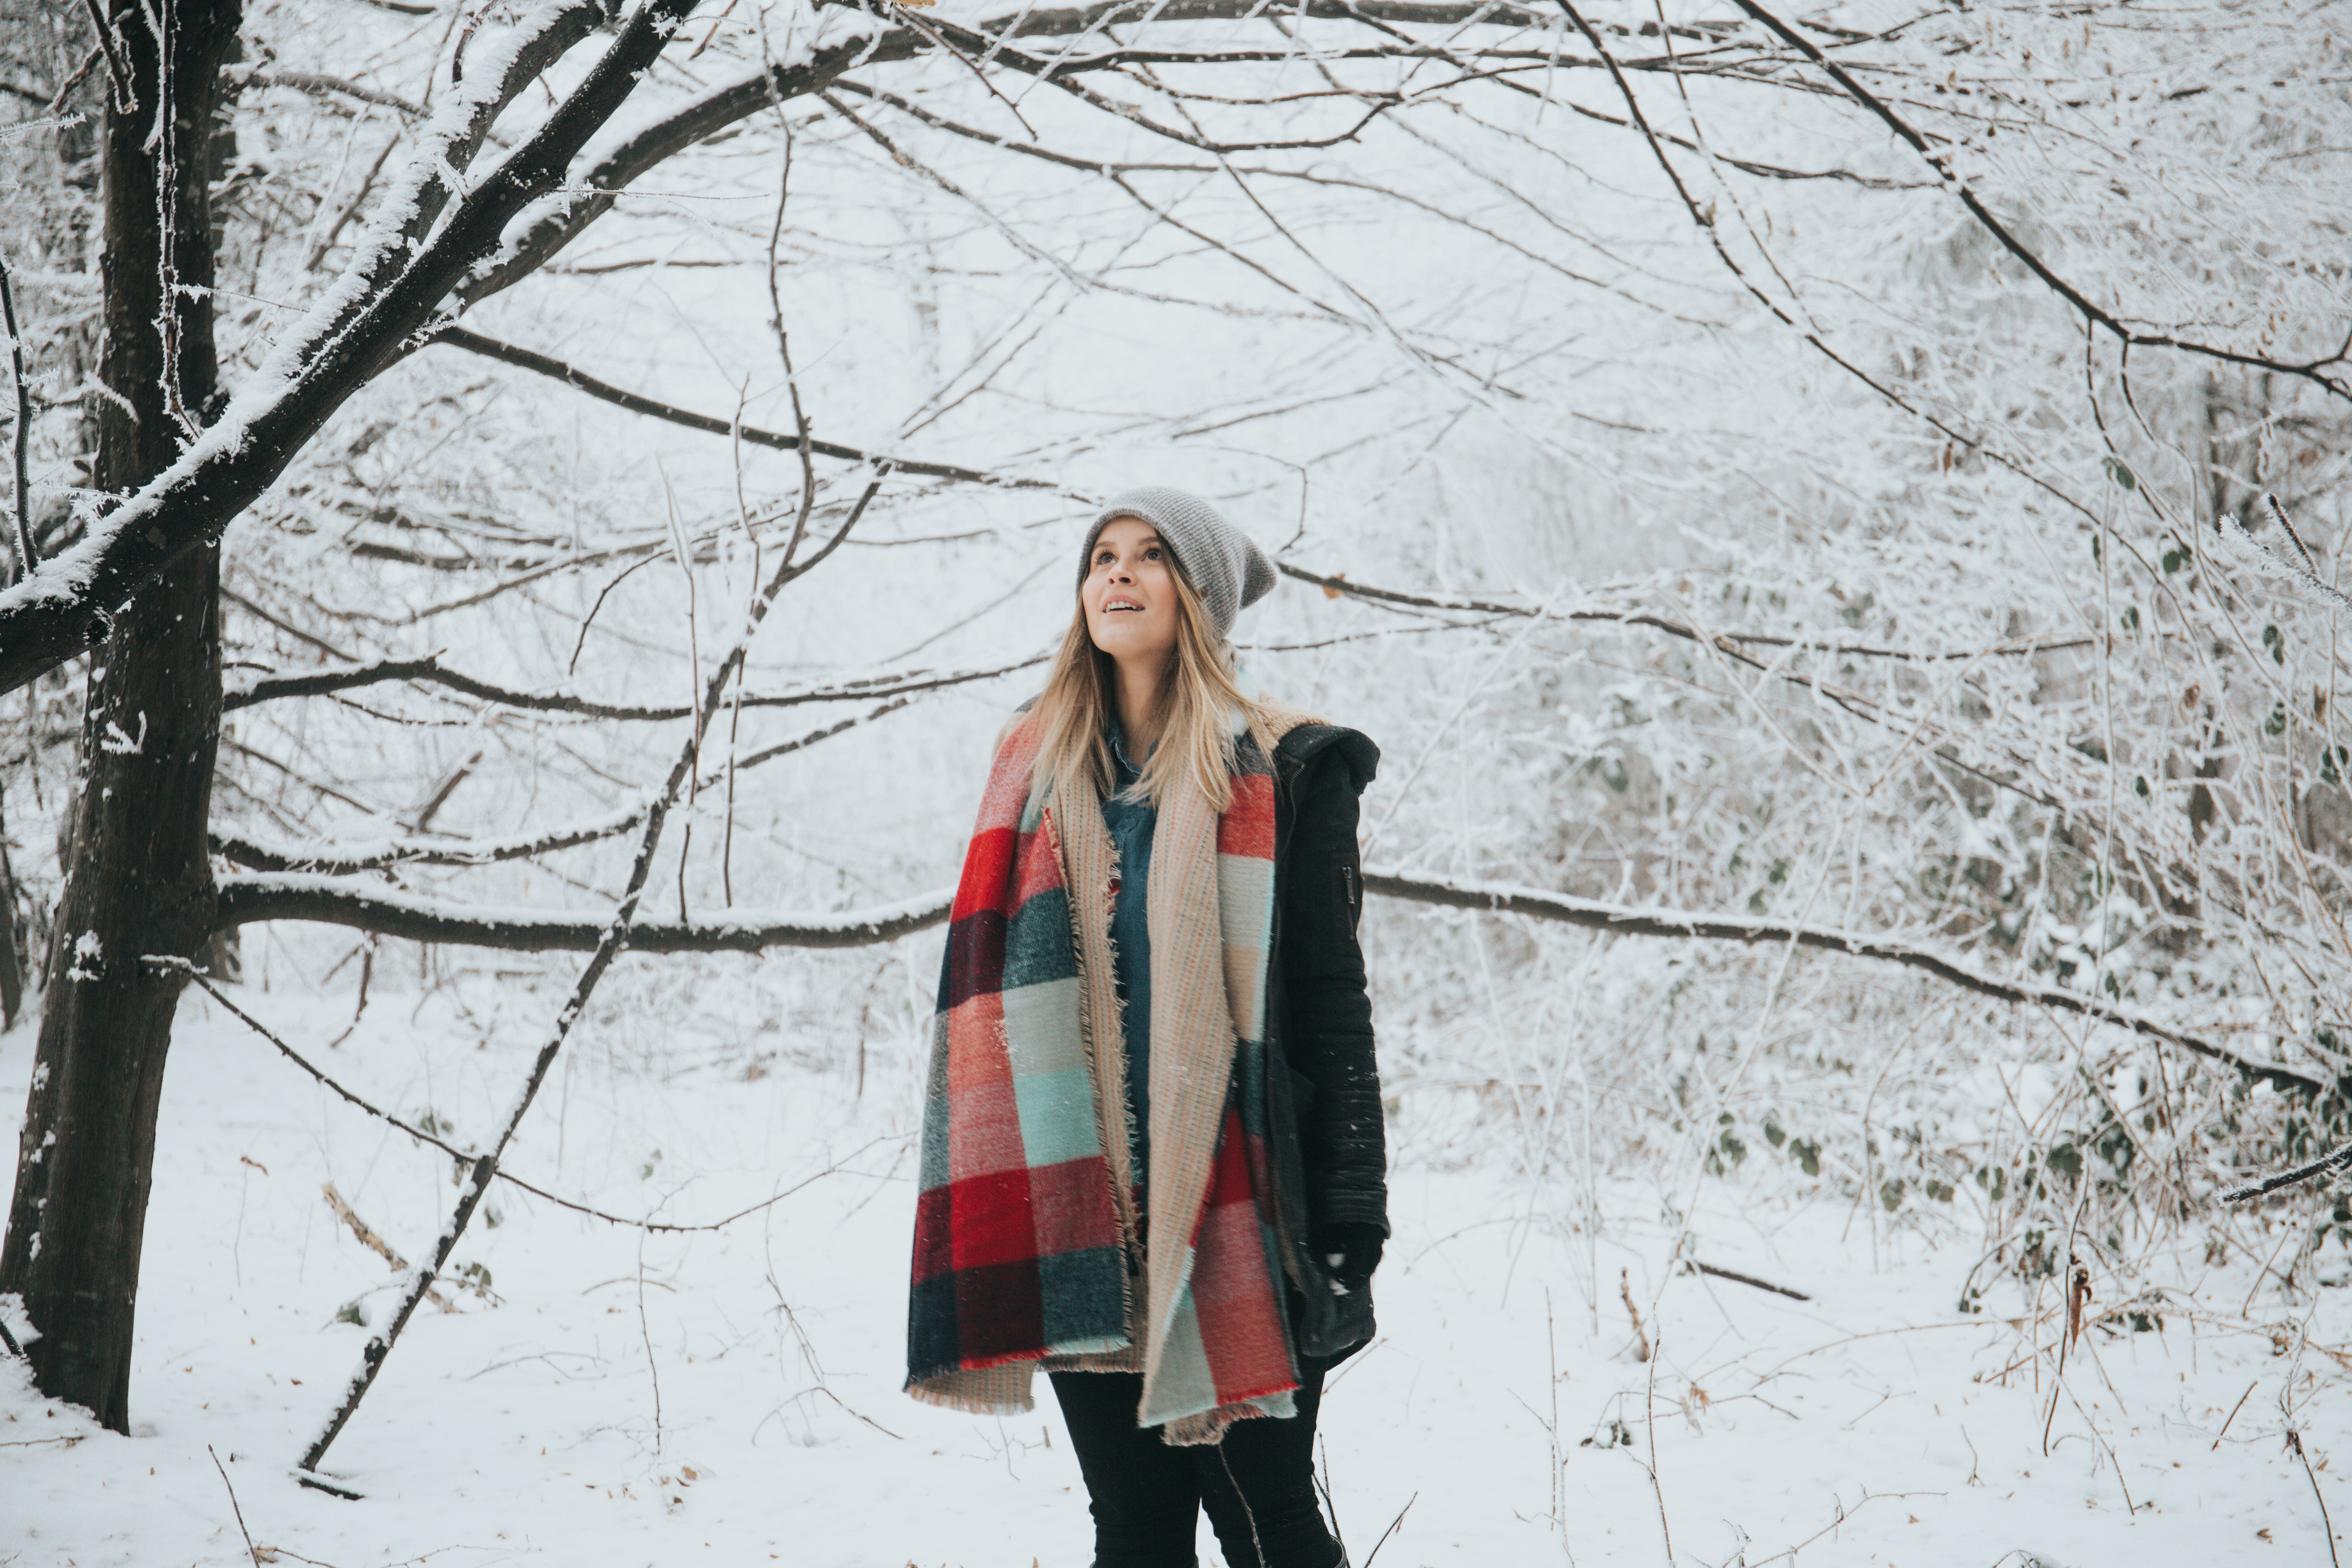 Happy woman in a hat and scarf stares in awe at snowy trees